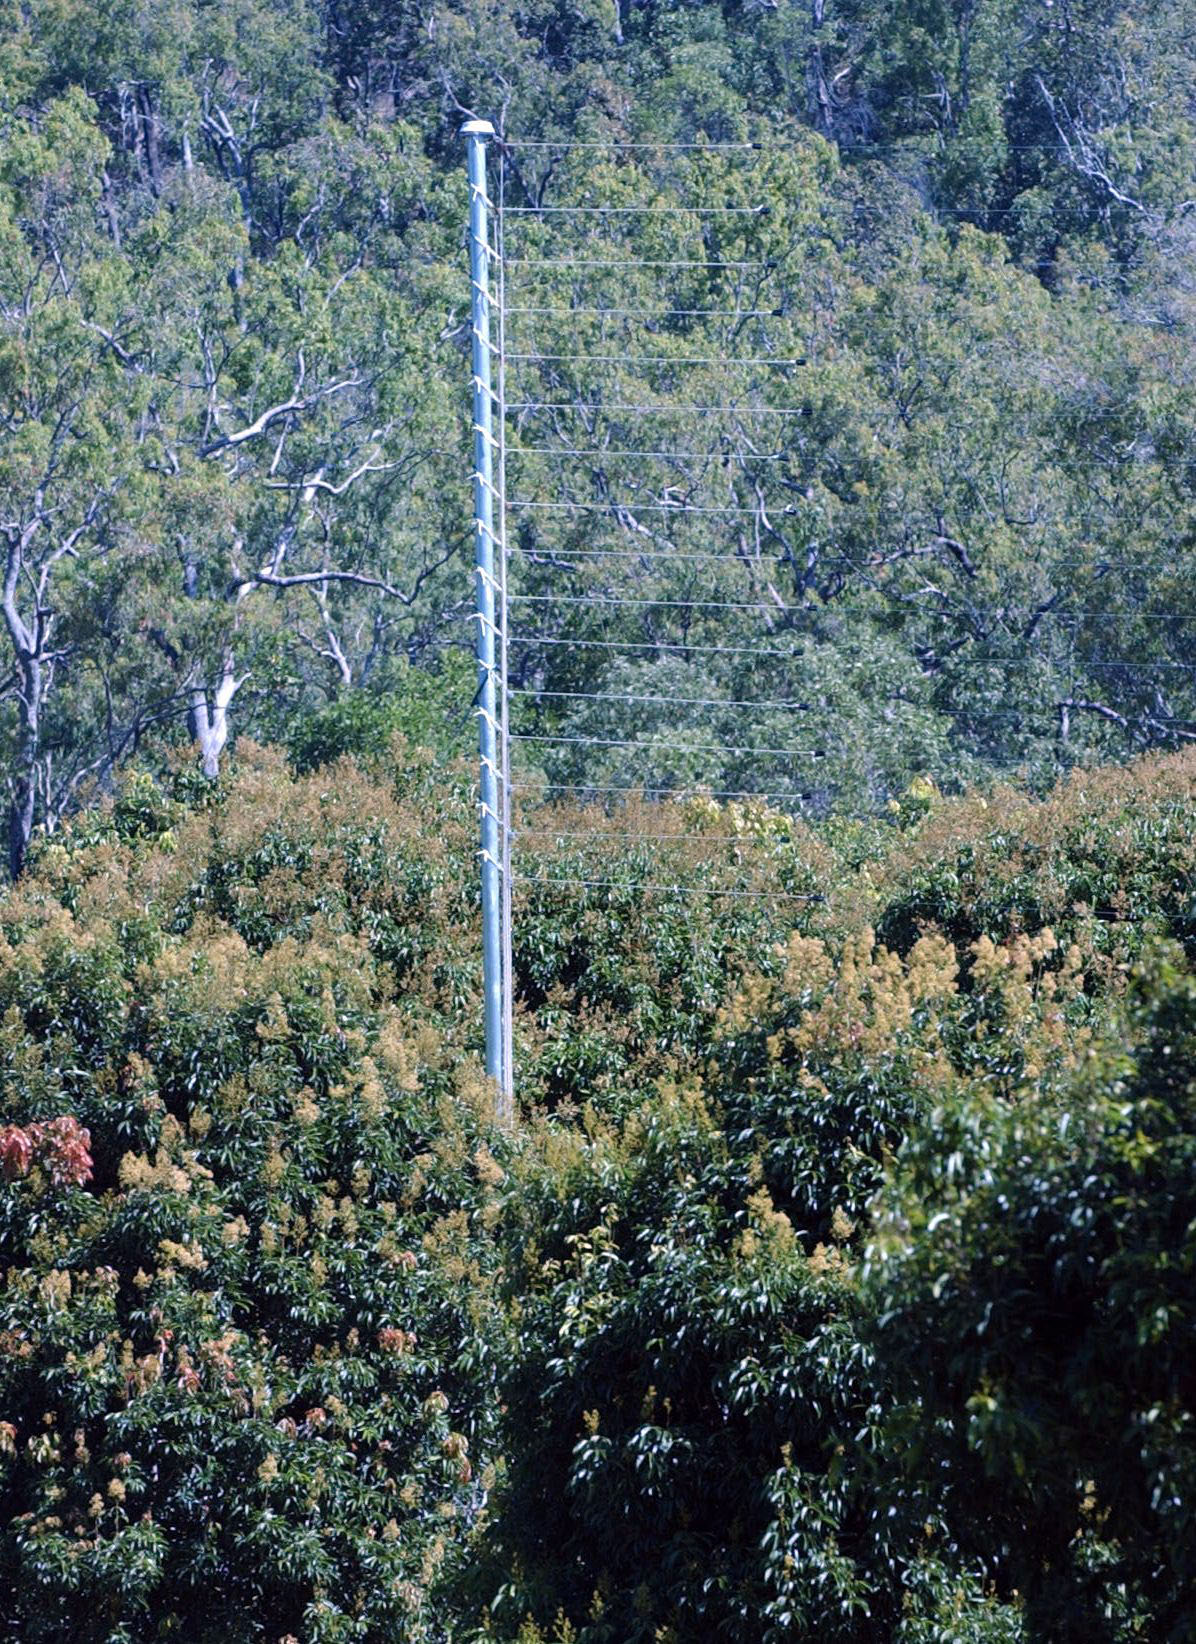 Image of electric grid above lychee trees Source: Townsville Bulletin, 6 September 2005